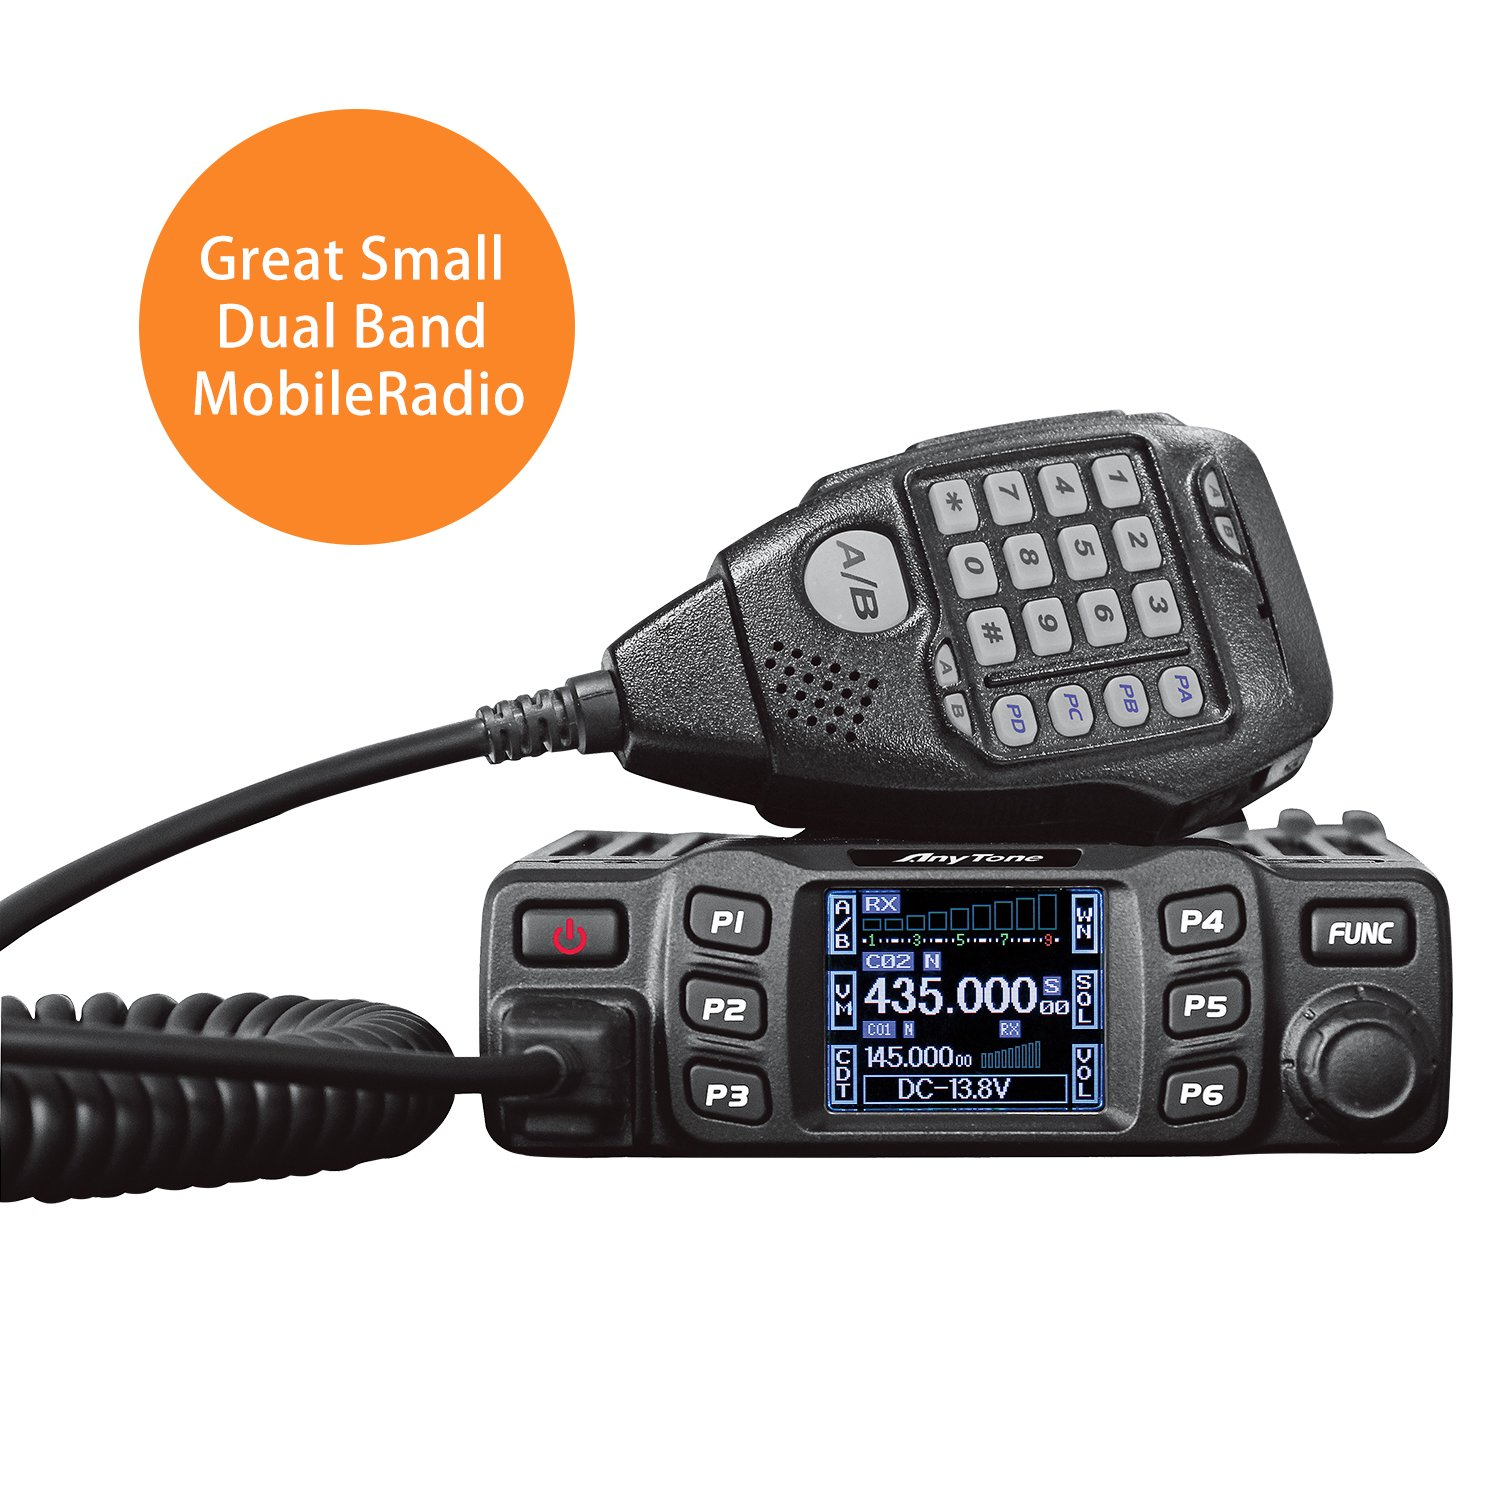 AnyTone AT-778UV Dual Band Transceiver Mobile Radio VHF/UHF Two Way and Amateur Radio by AnyTone